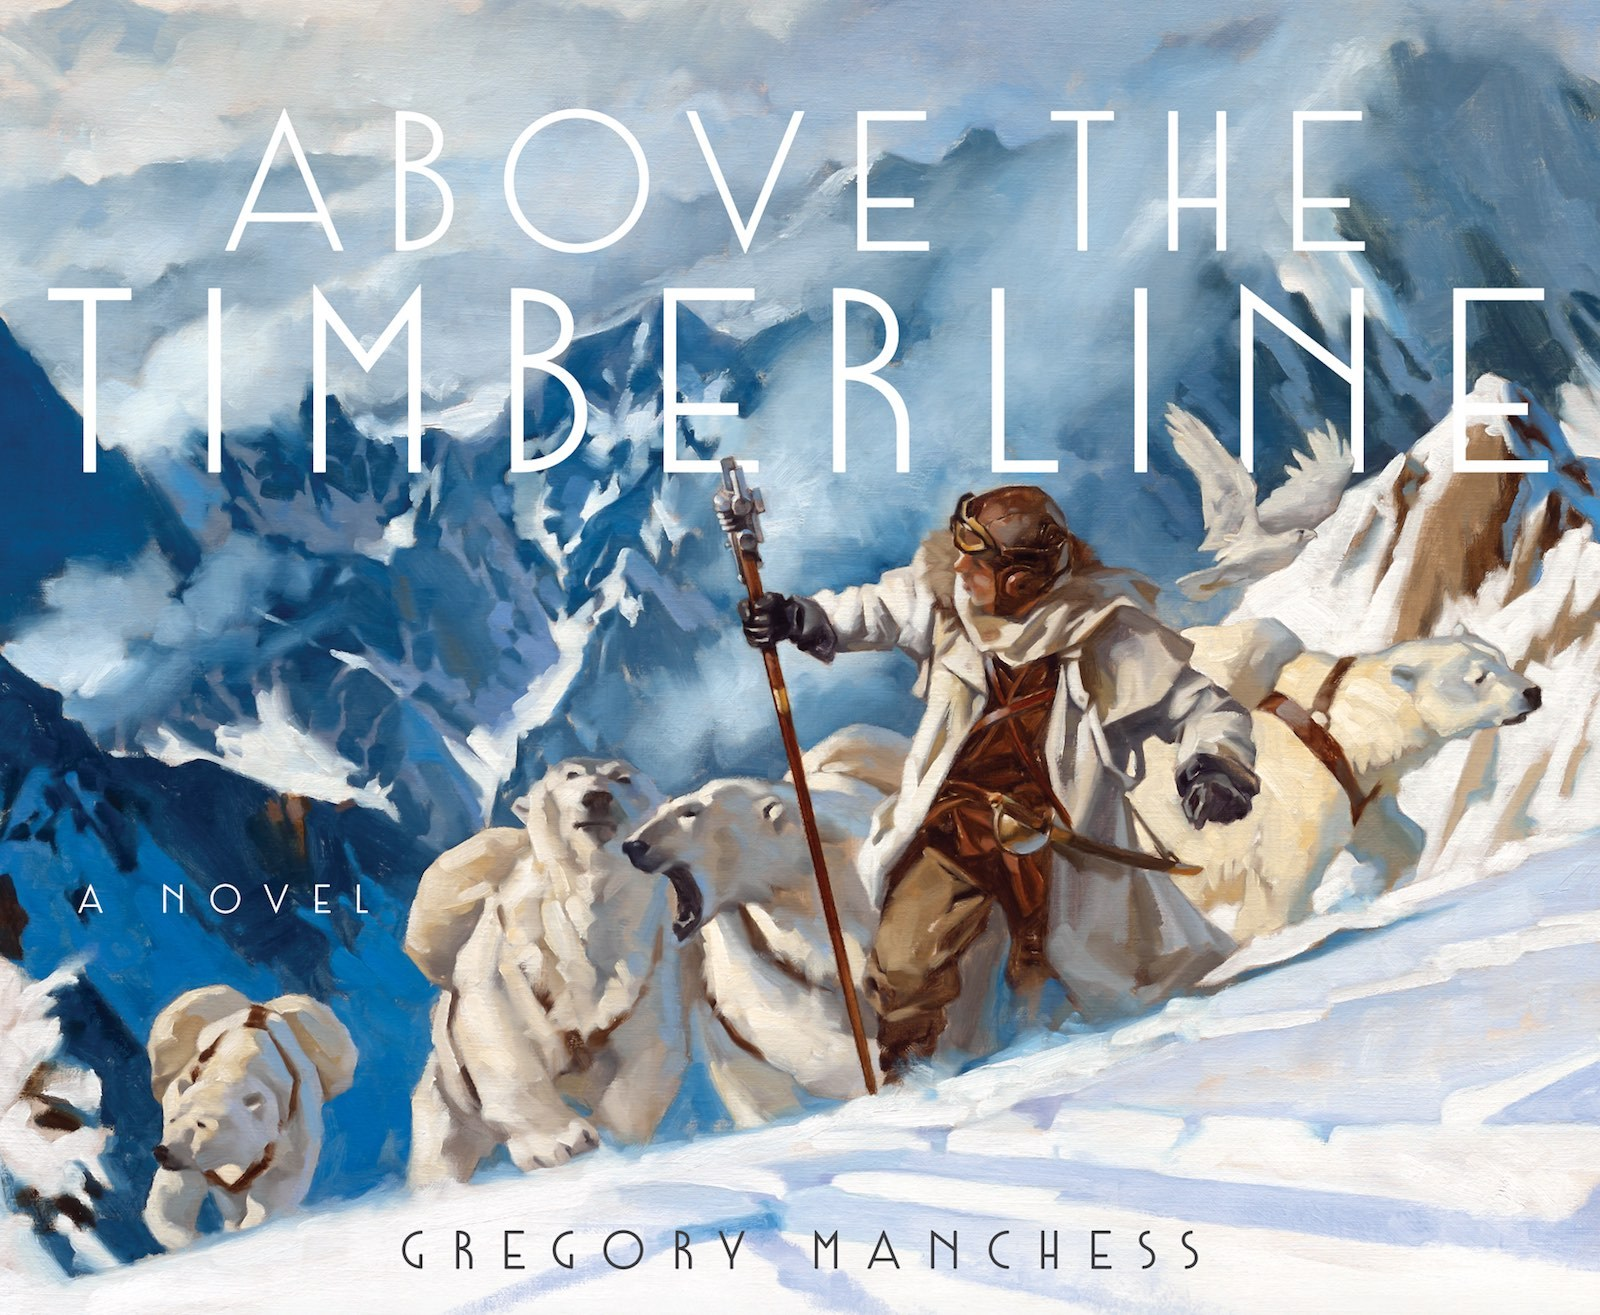 Publication Date: Above The Timberline